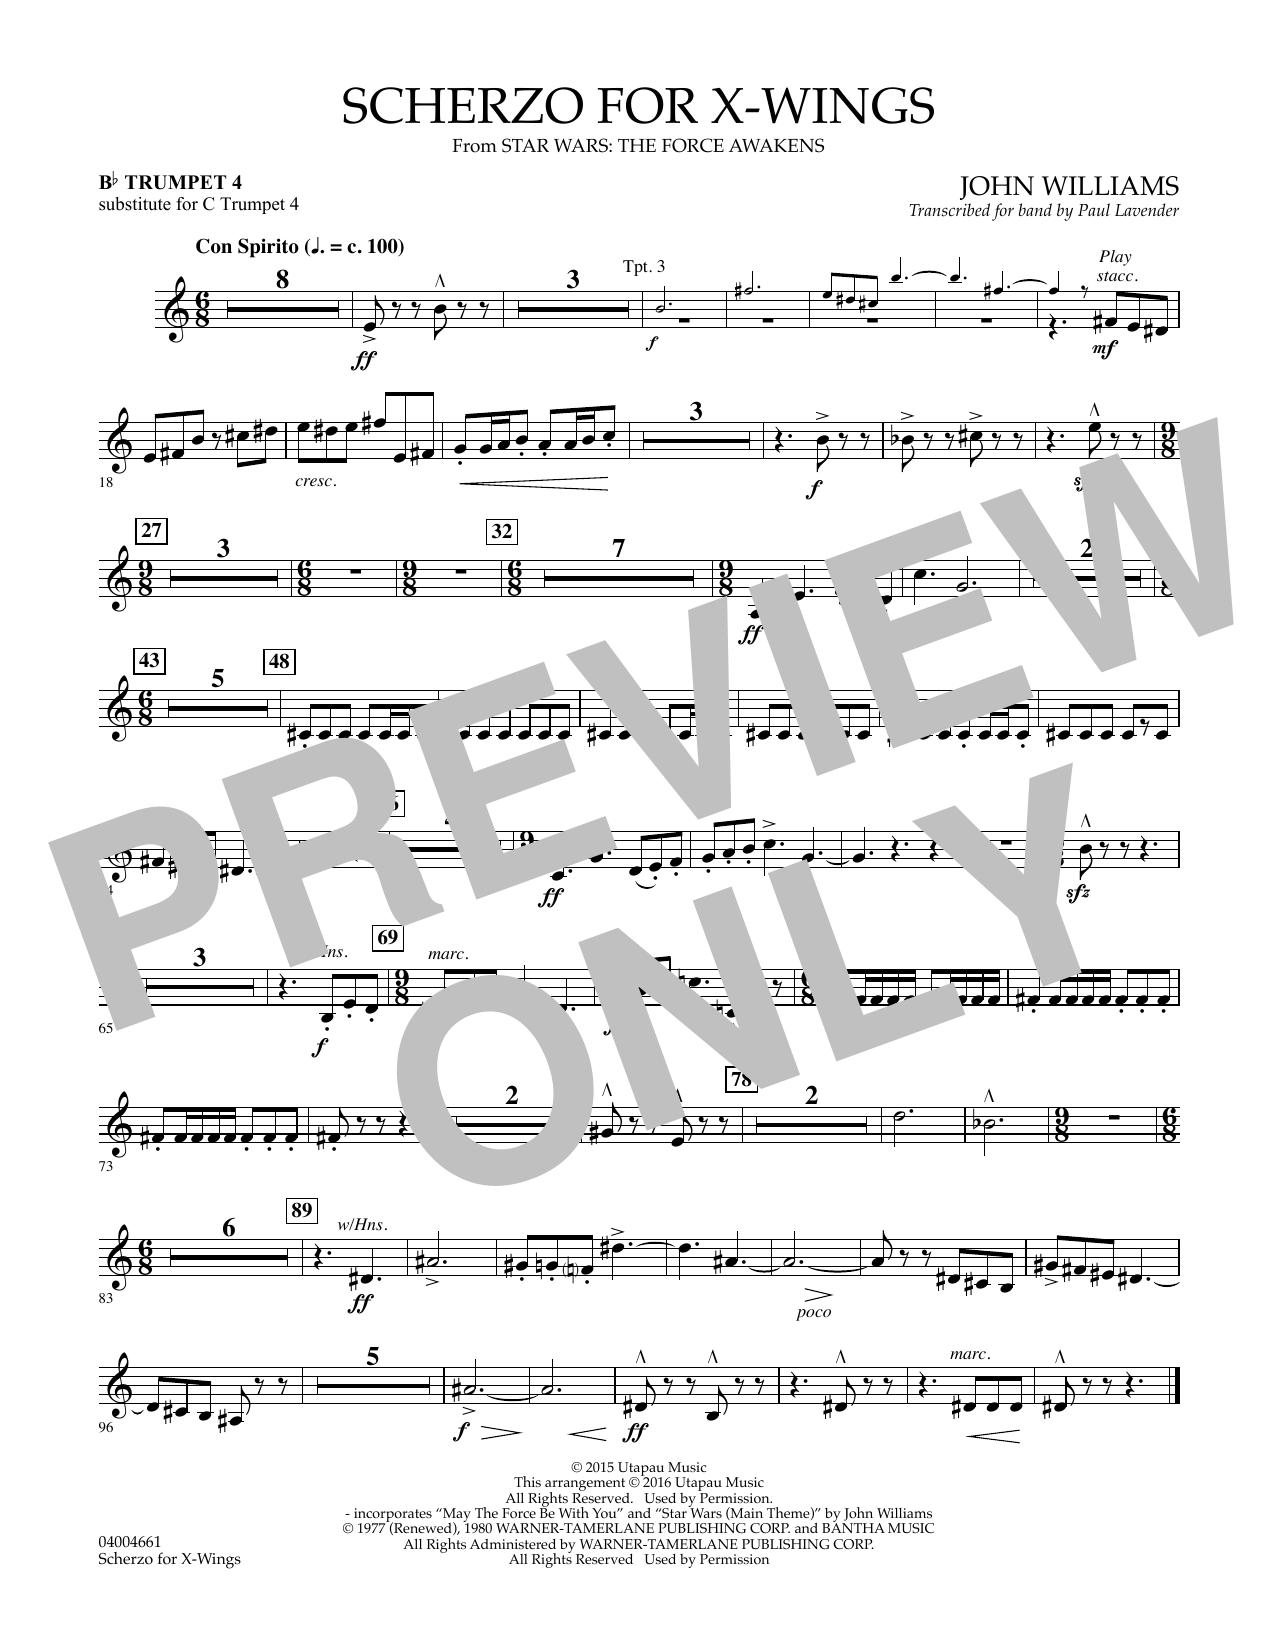 Scherzo for X-Wings - Bb Trumpet parts - Bb Trumpet 4 (sub. C Tpt. 4)